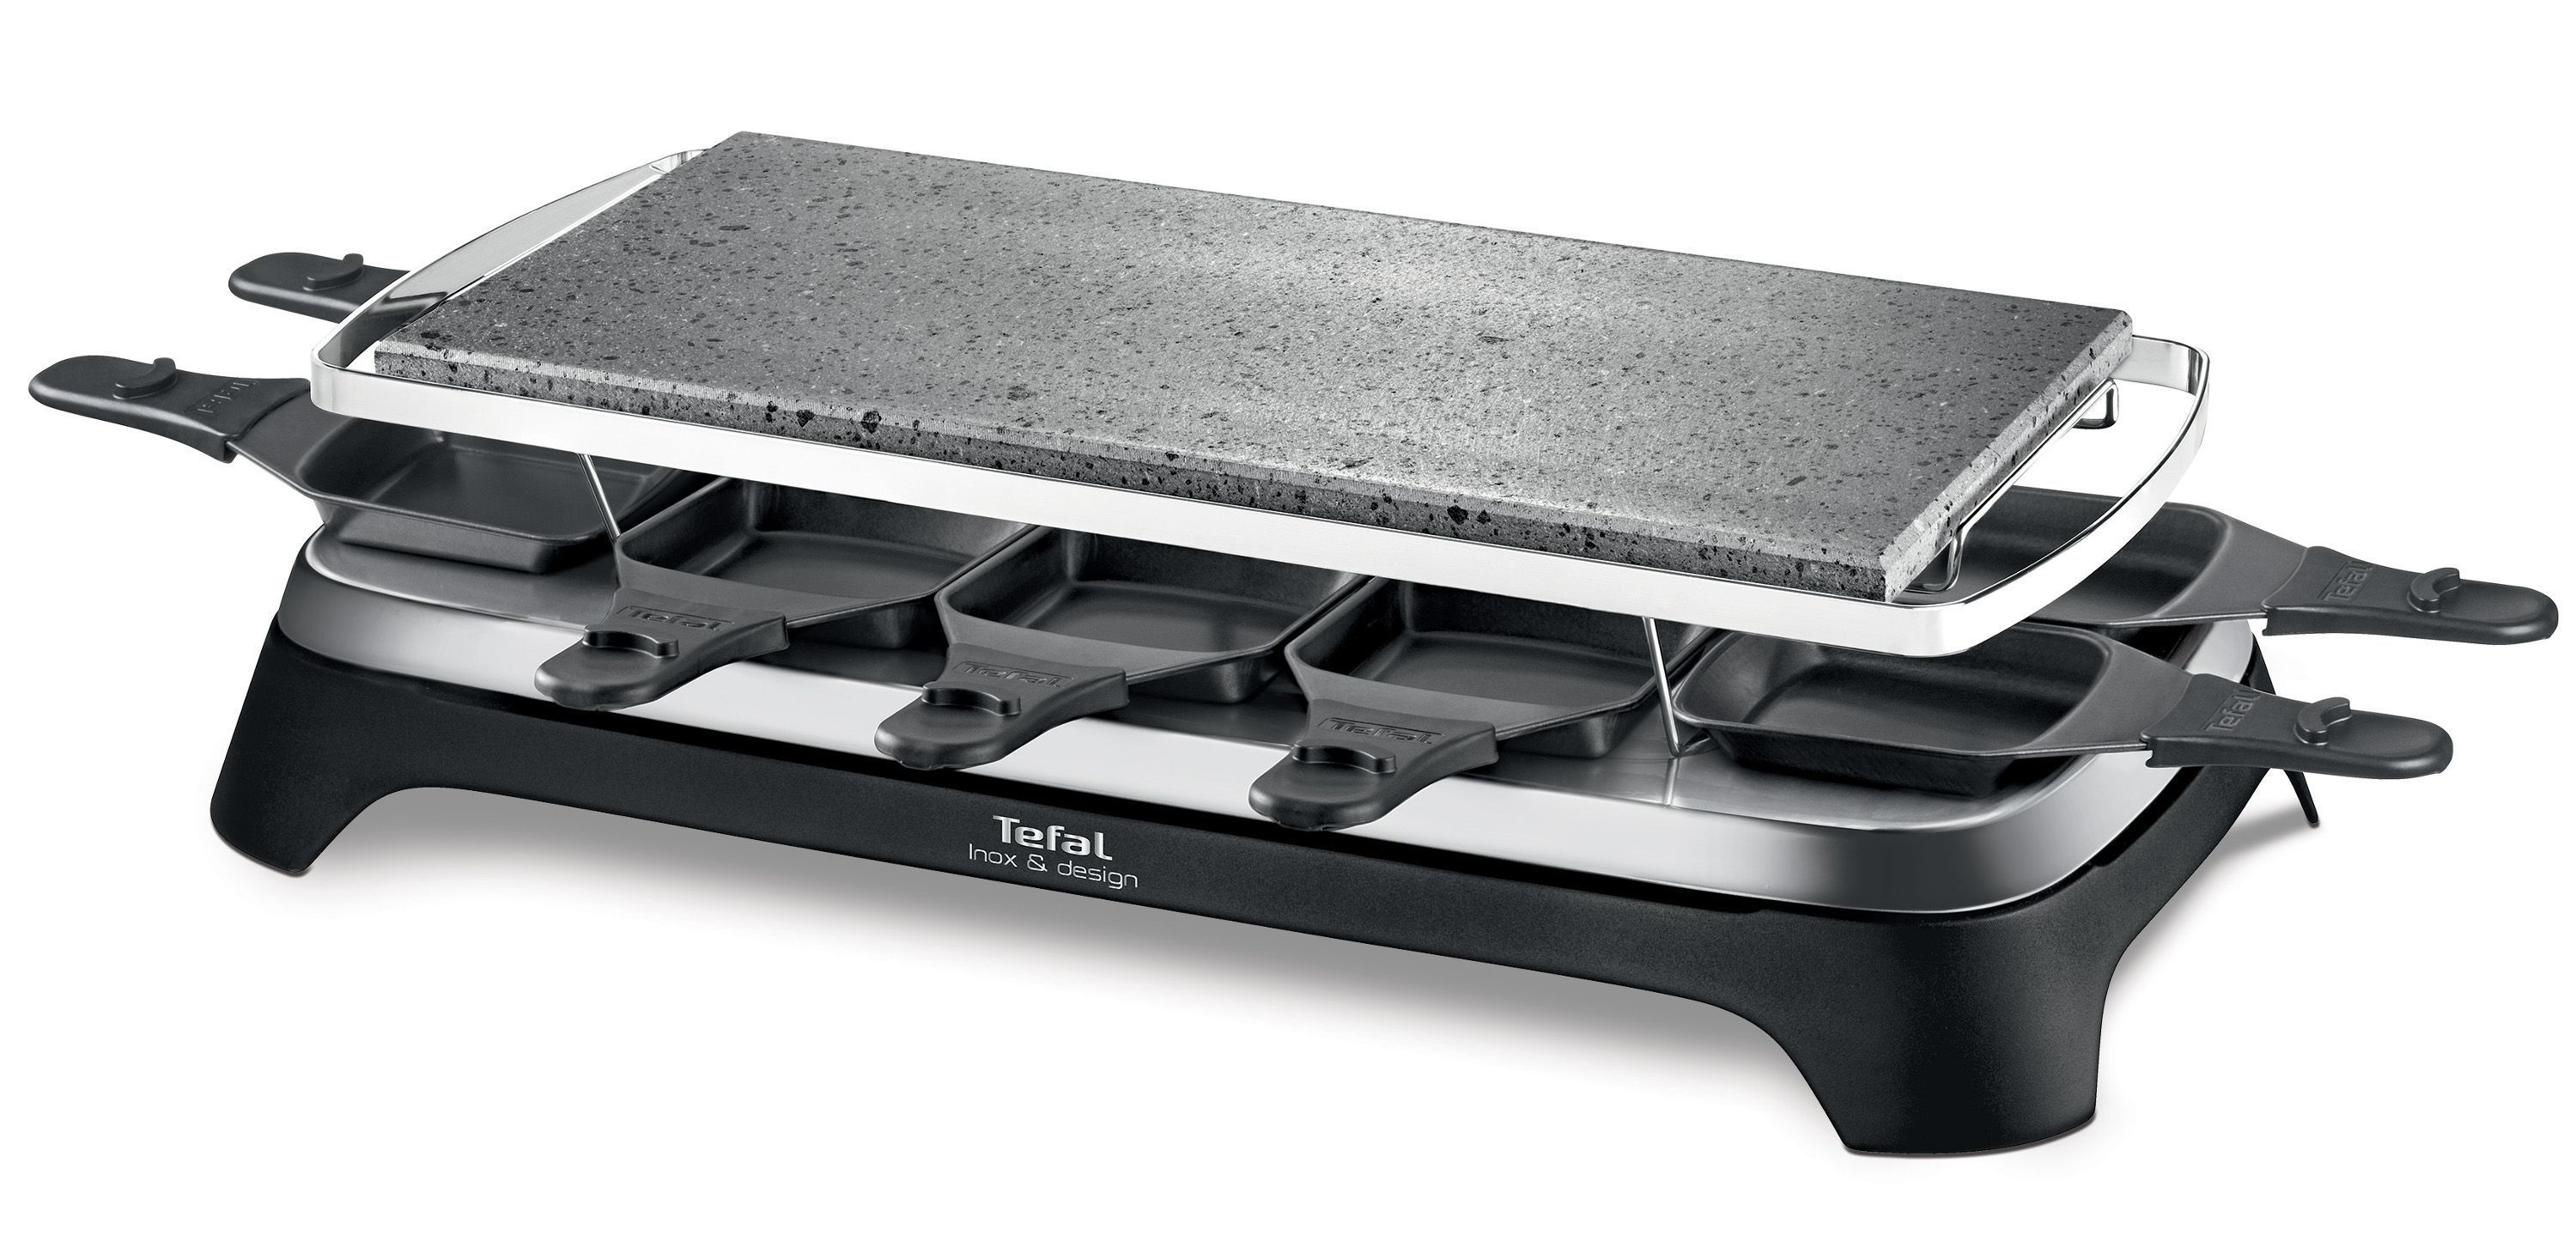 tefal pr457812 appareil raclette pierrade 10 personnes noir achat vente appareil. Black Bedroom Furniture Sets. Home Design Ideas